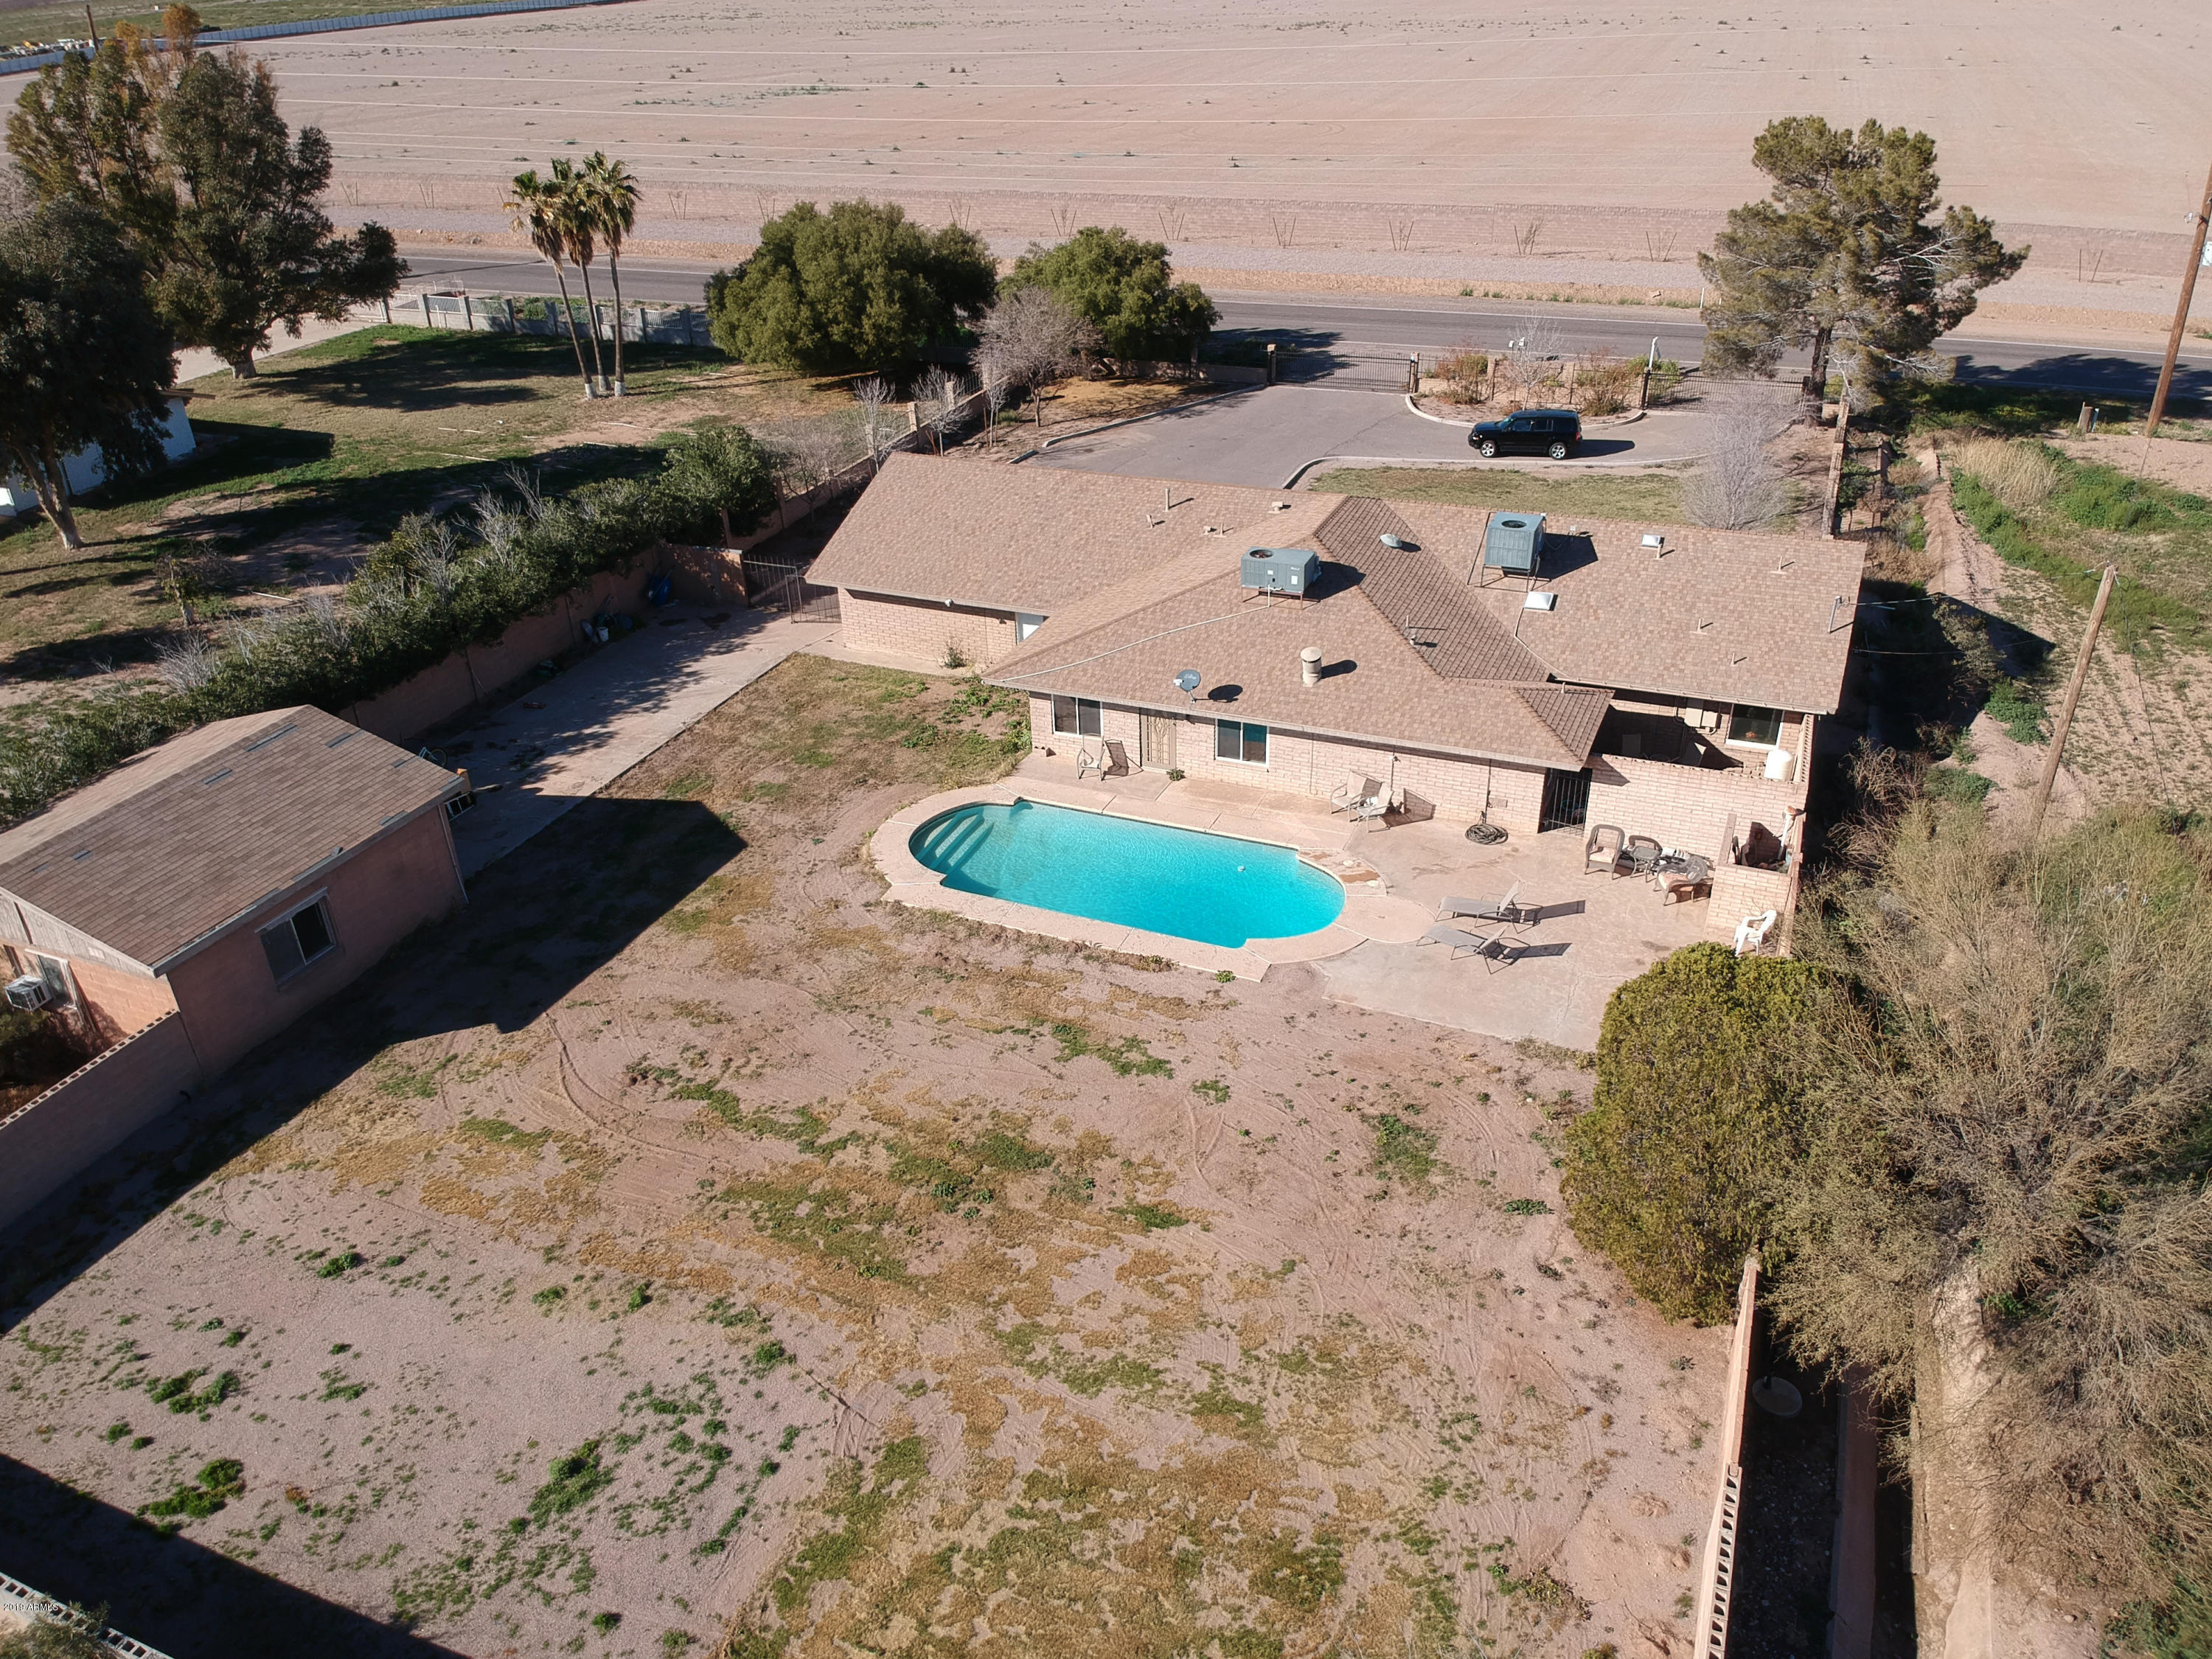 Photo for 1109 W Peters Road, Casa Grande, AZ 85193 (MLS # 5864476)